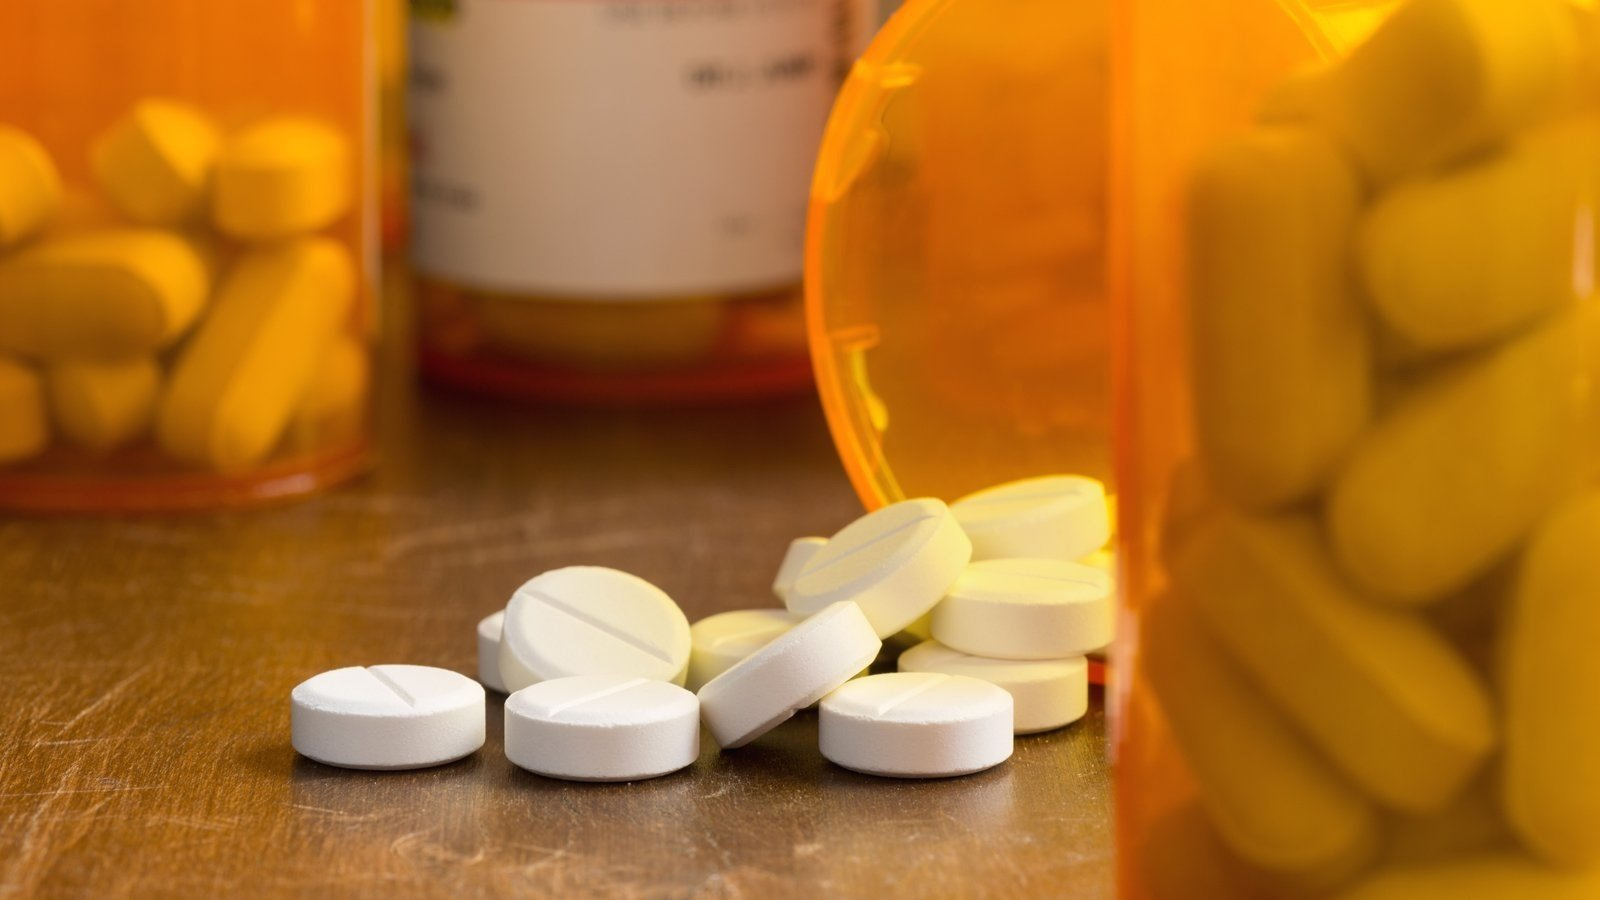 FDA Changes Safety Label for Pediatric Prescription Opioid Medication